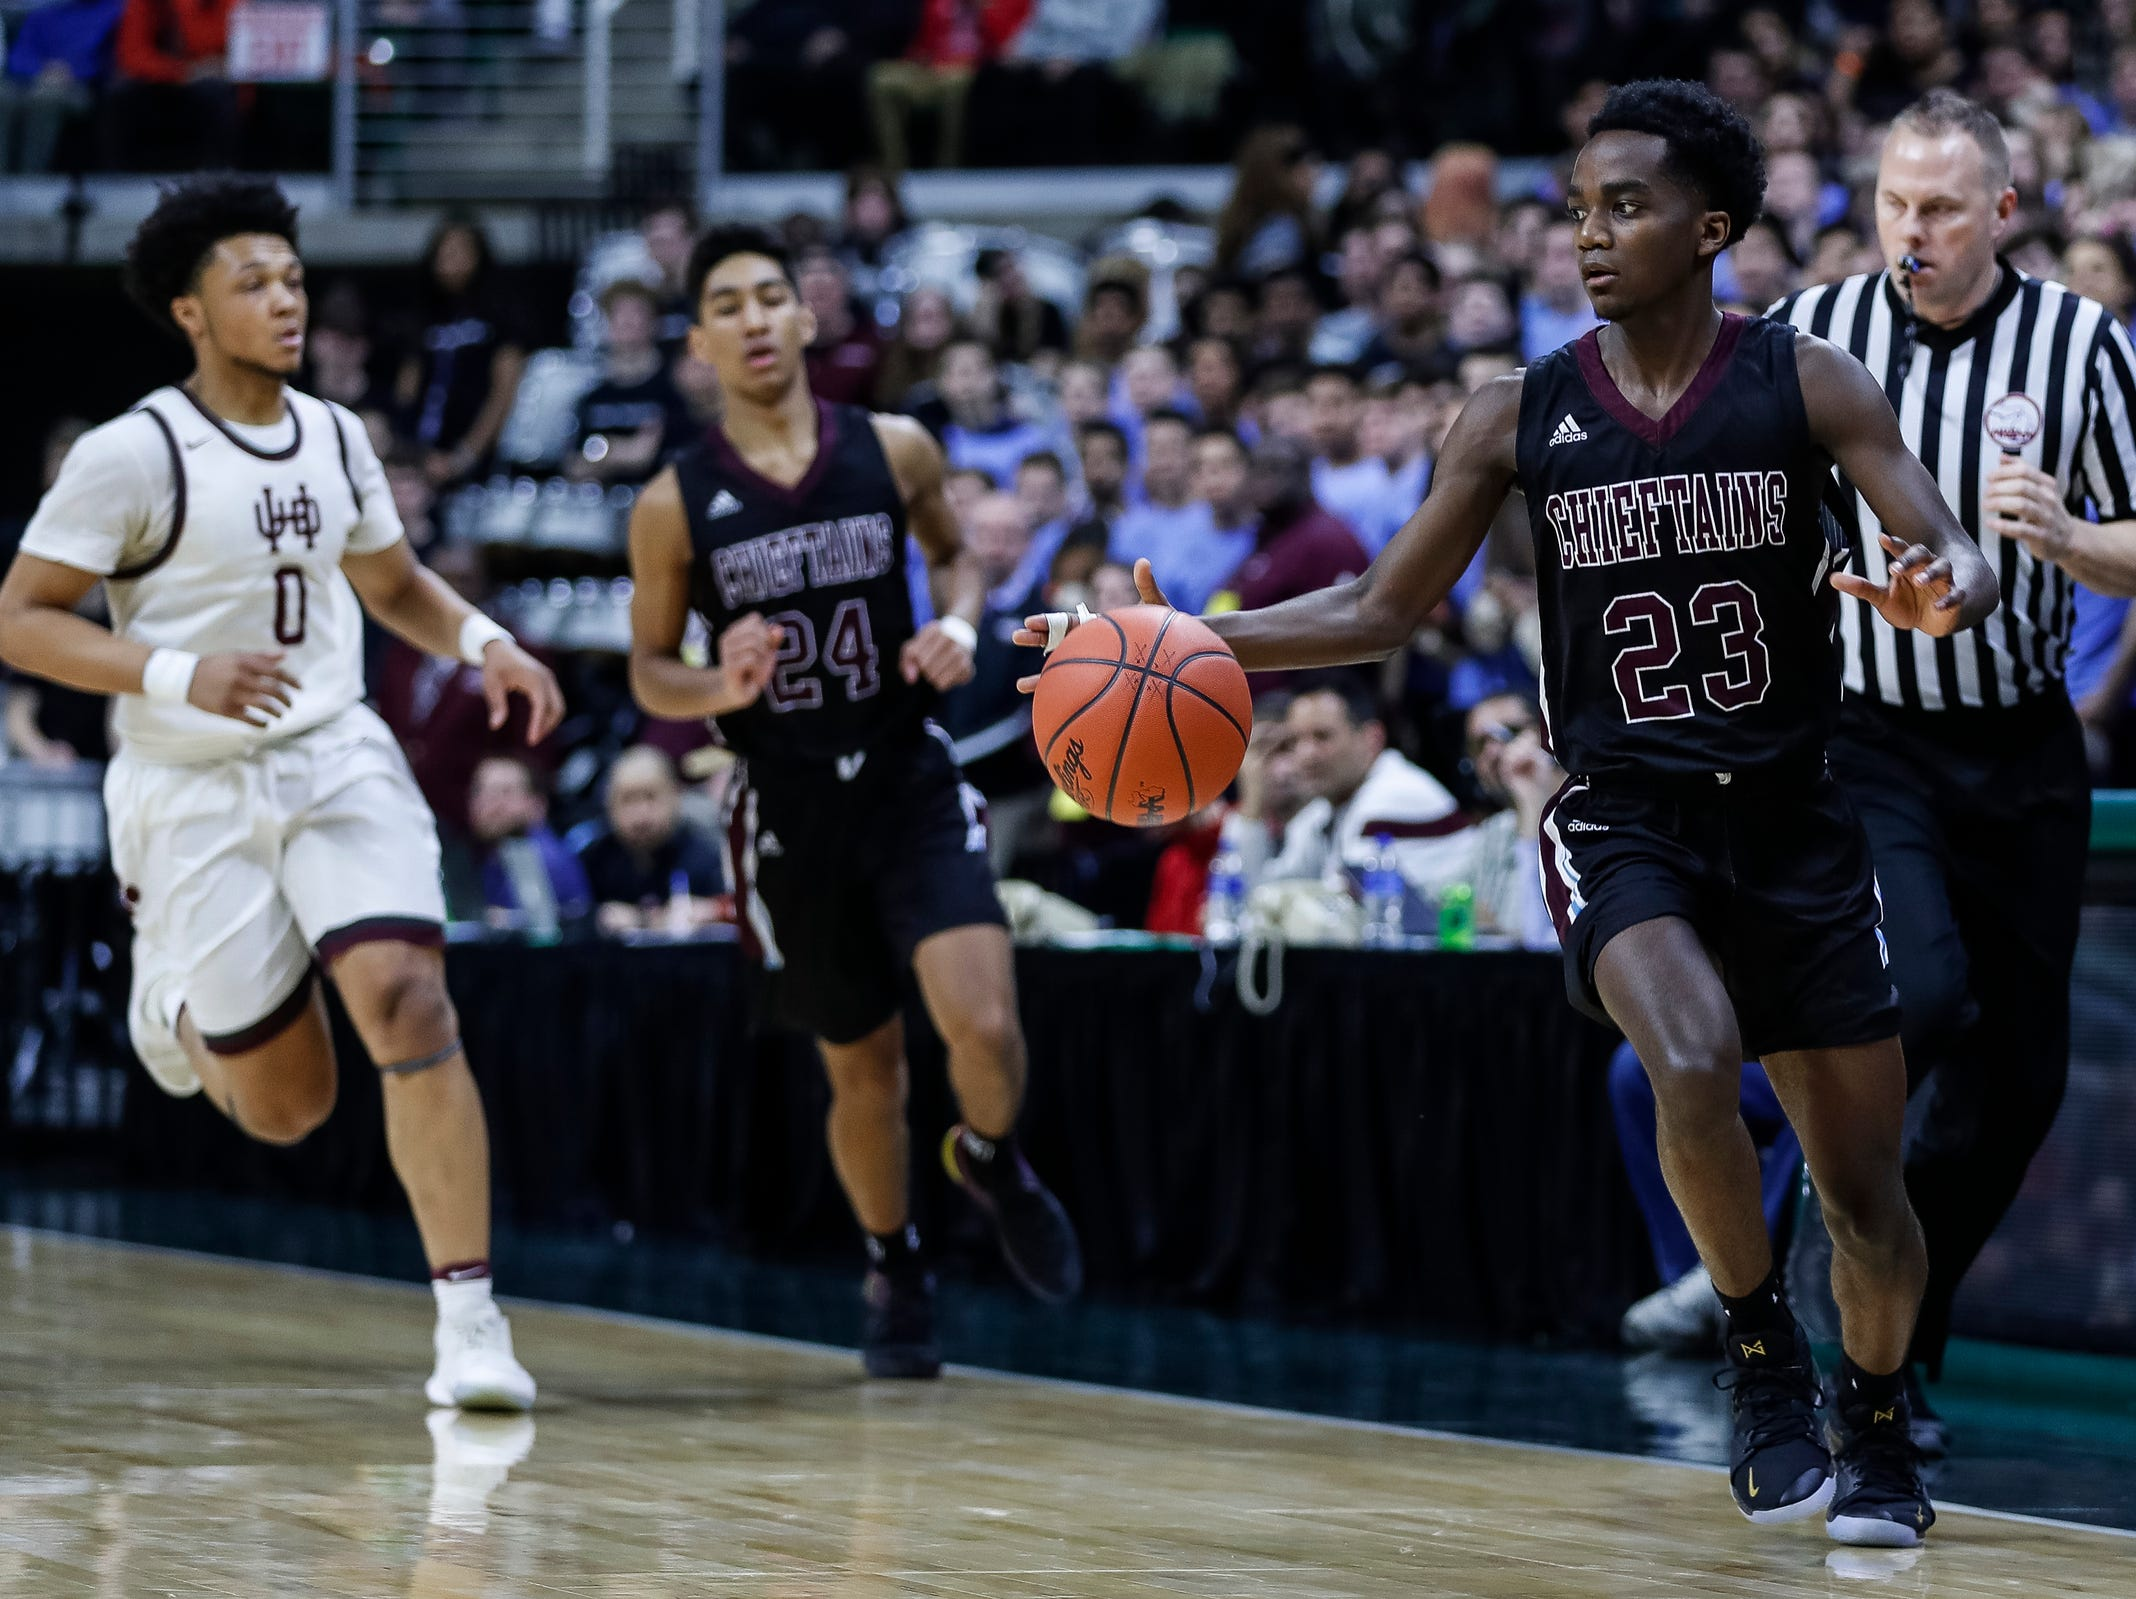 Okemos' Austin Gibson (23) dribbles against U-D Jesuit during the first half of MHSAA Division 1 semifinal at the Breslin Center in East Lansing, Friday, March 15, 2019.